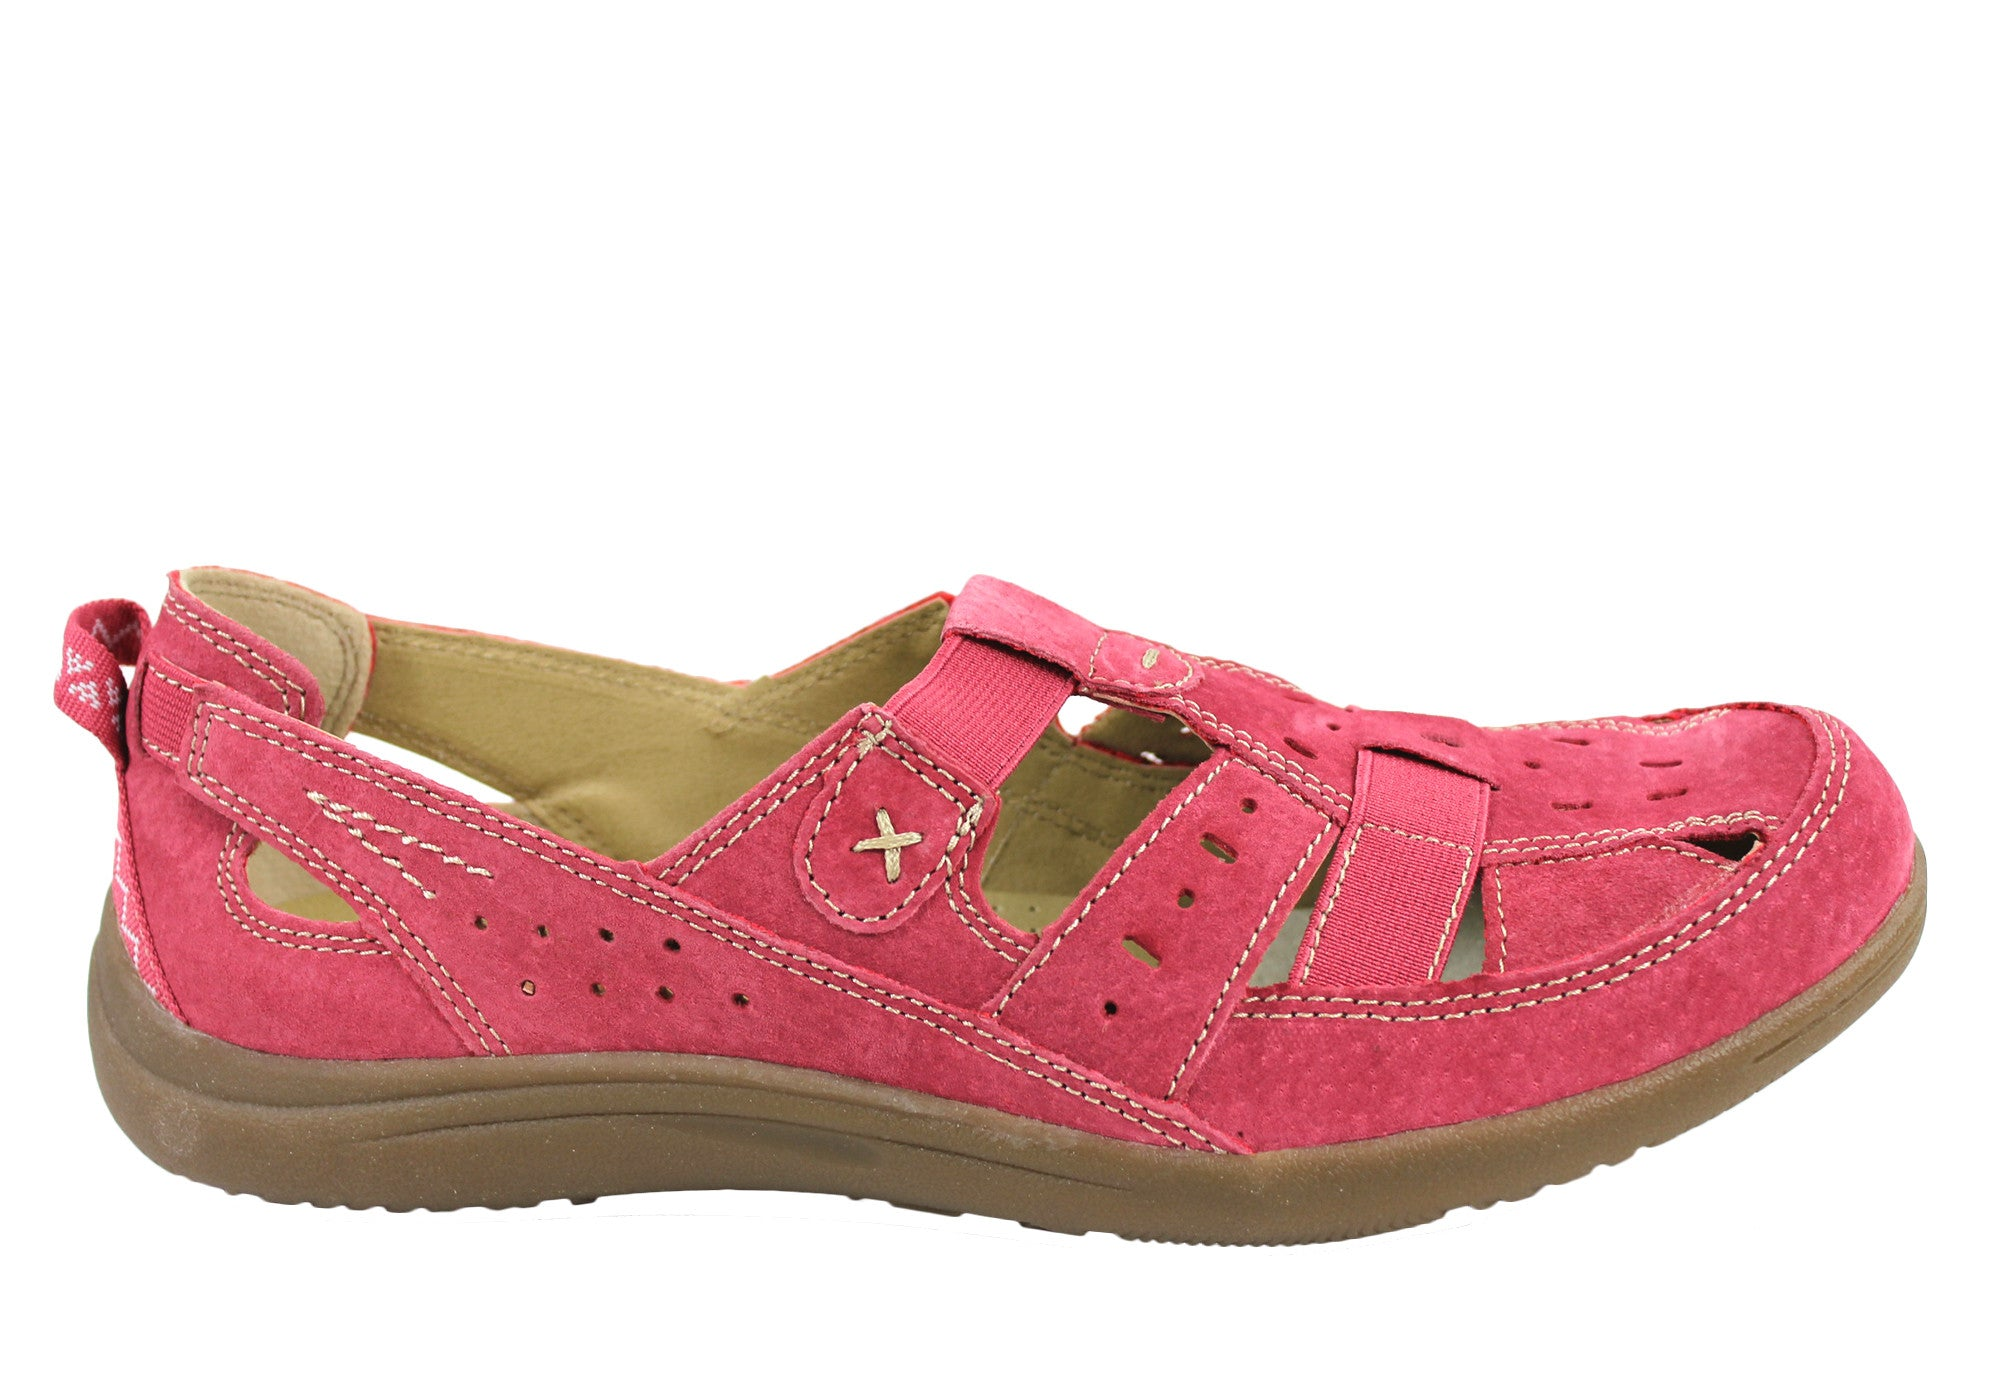 Walking Shoes Arch Support Womens